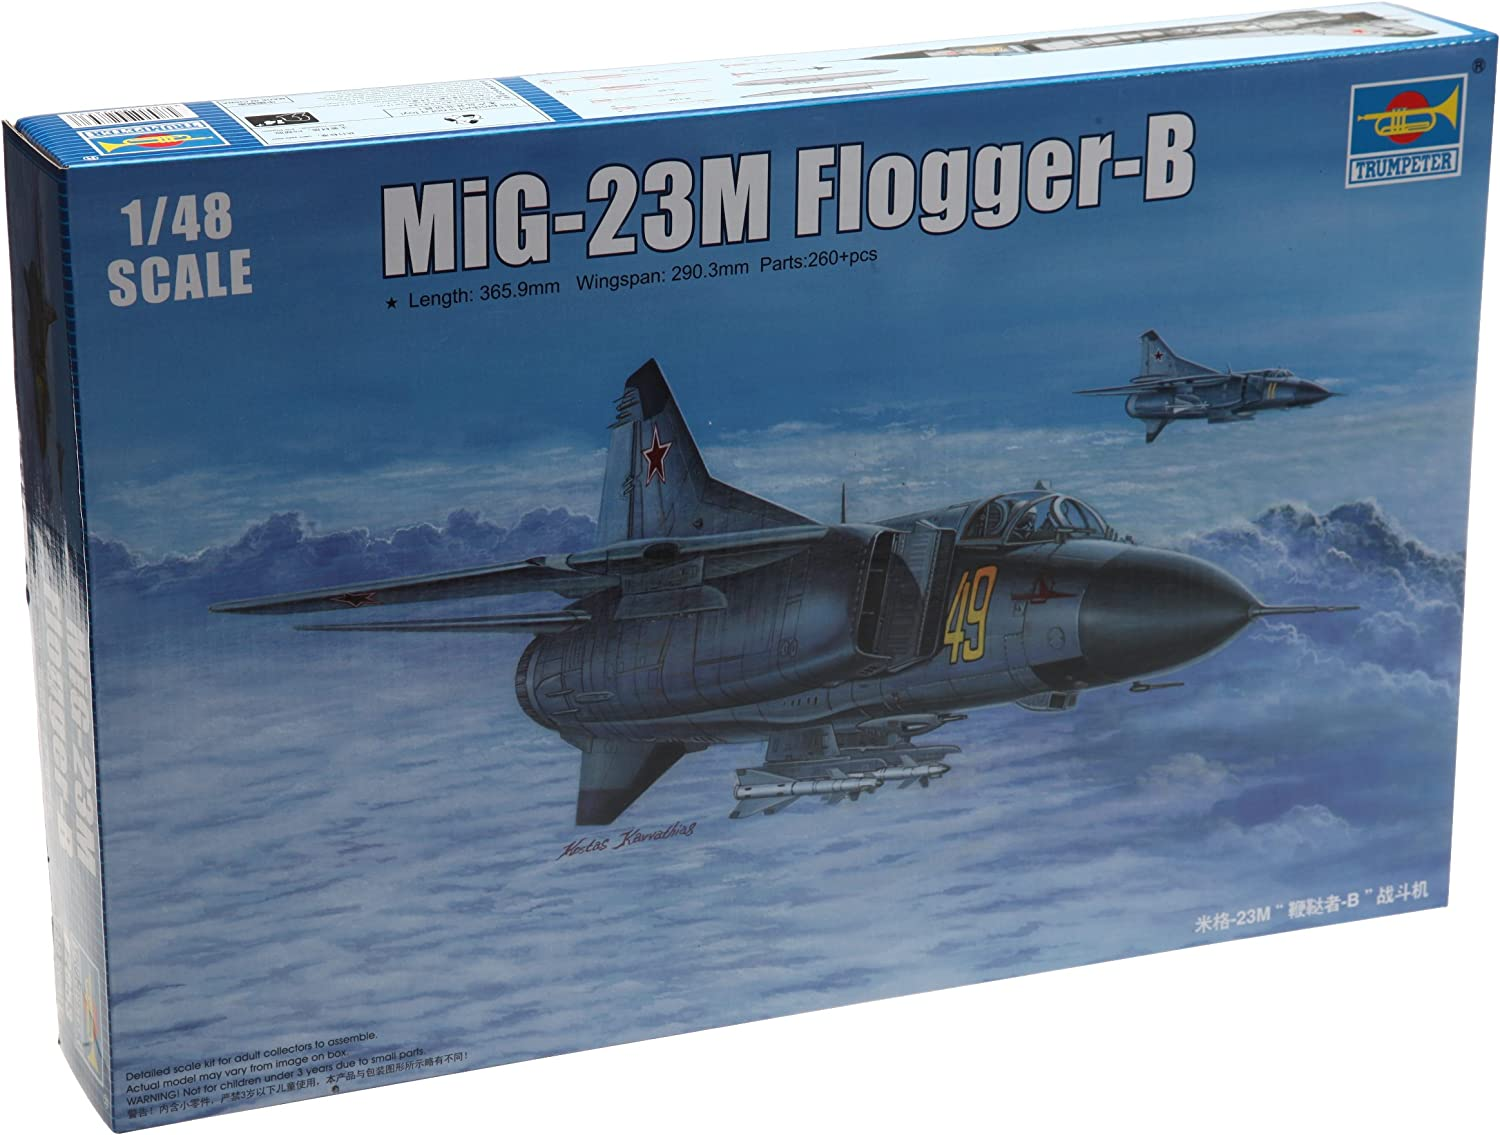 Trumpeter 02853 Modellbausatz Russian MiG-23M Flogger-B B007V2XU7A Deutschland  | Up-to-date-styling